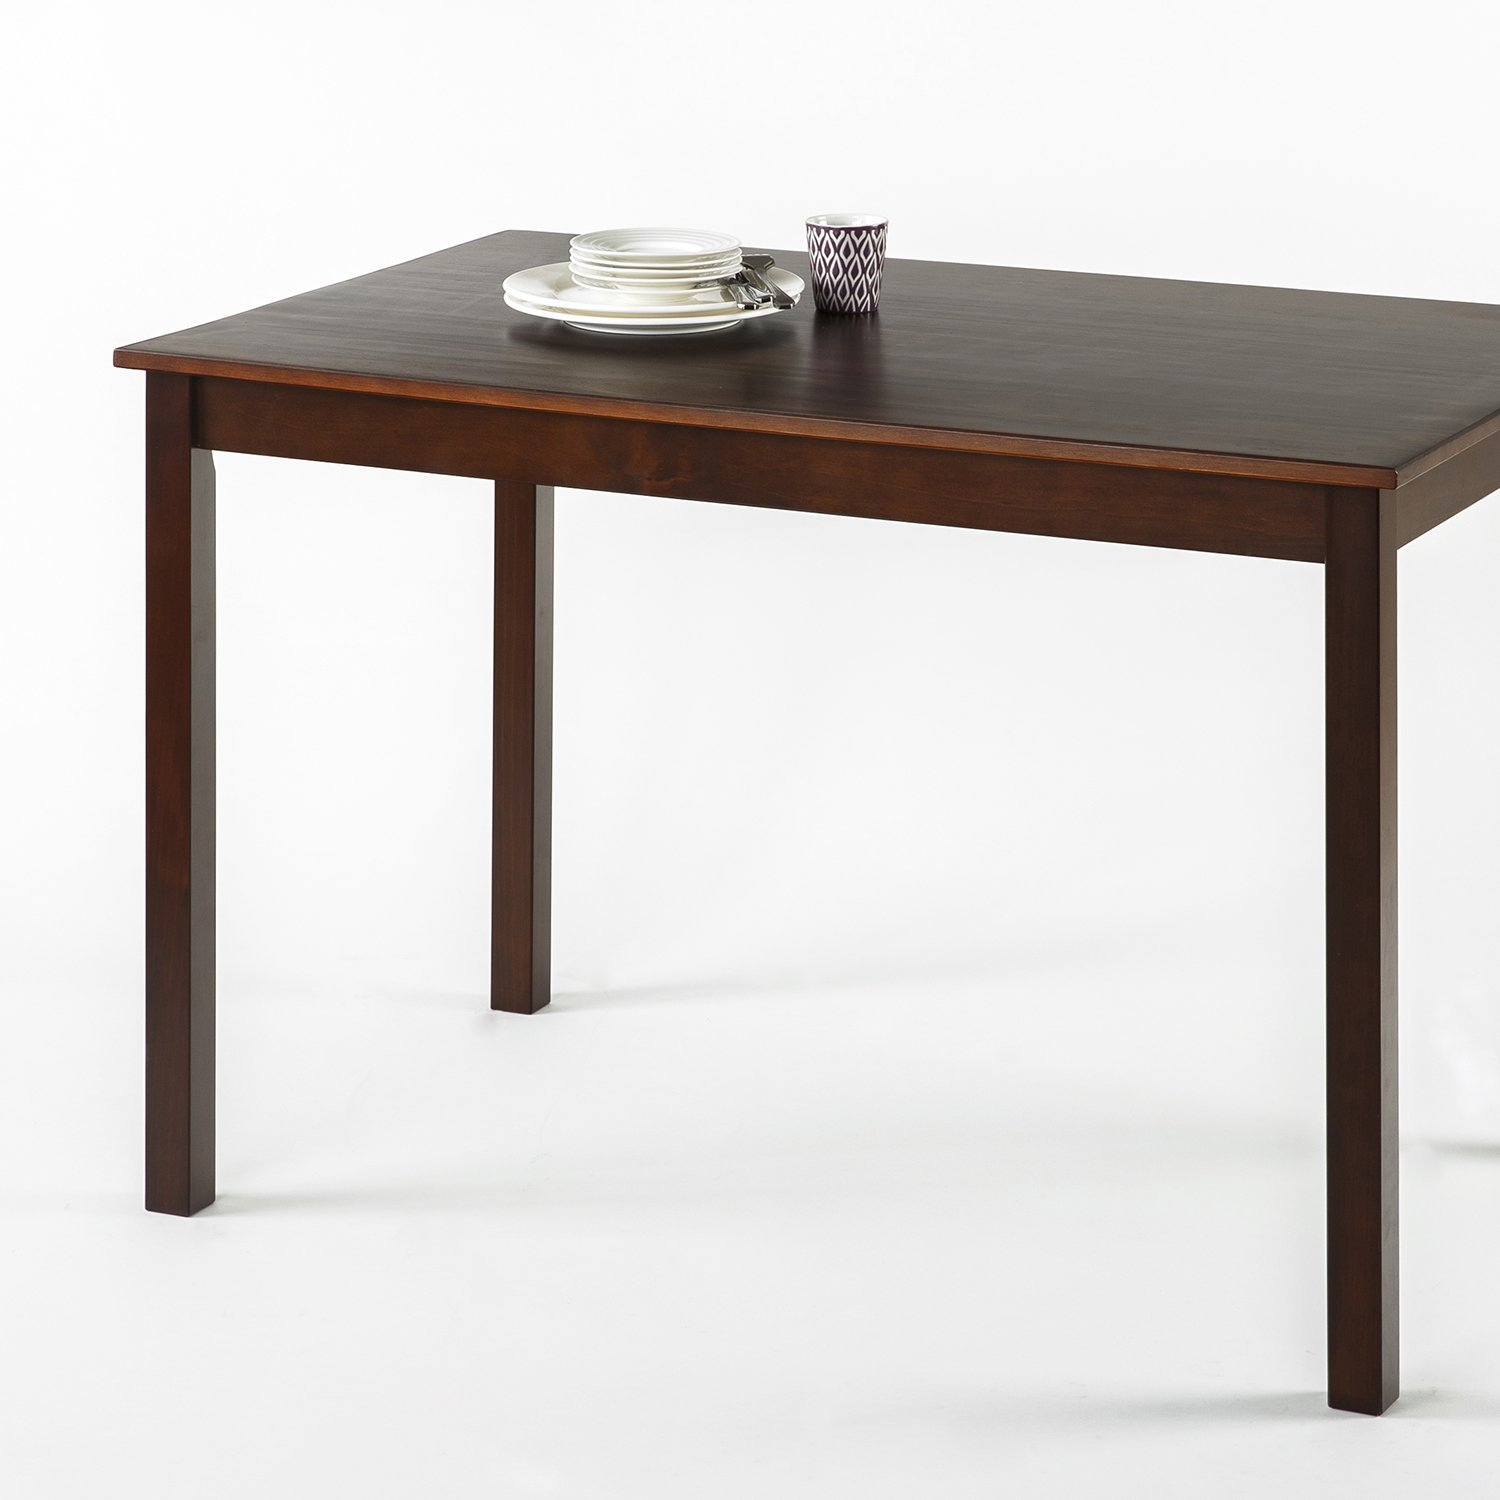 Zinus Espresso Wood Dining Table/Table Only by Zinus (Image #3)